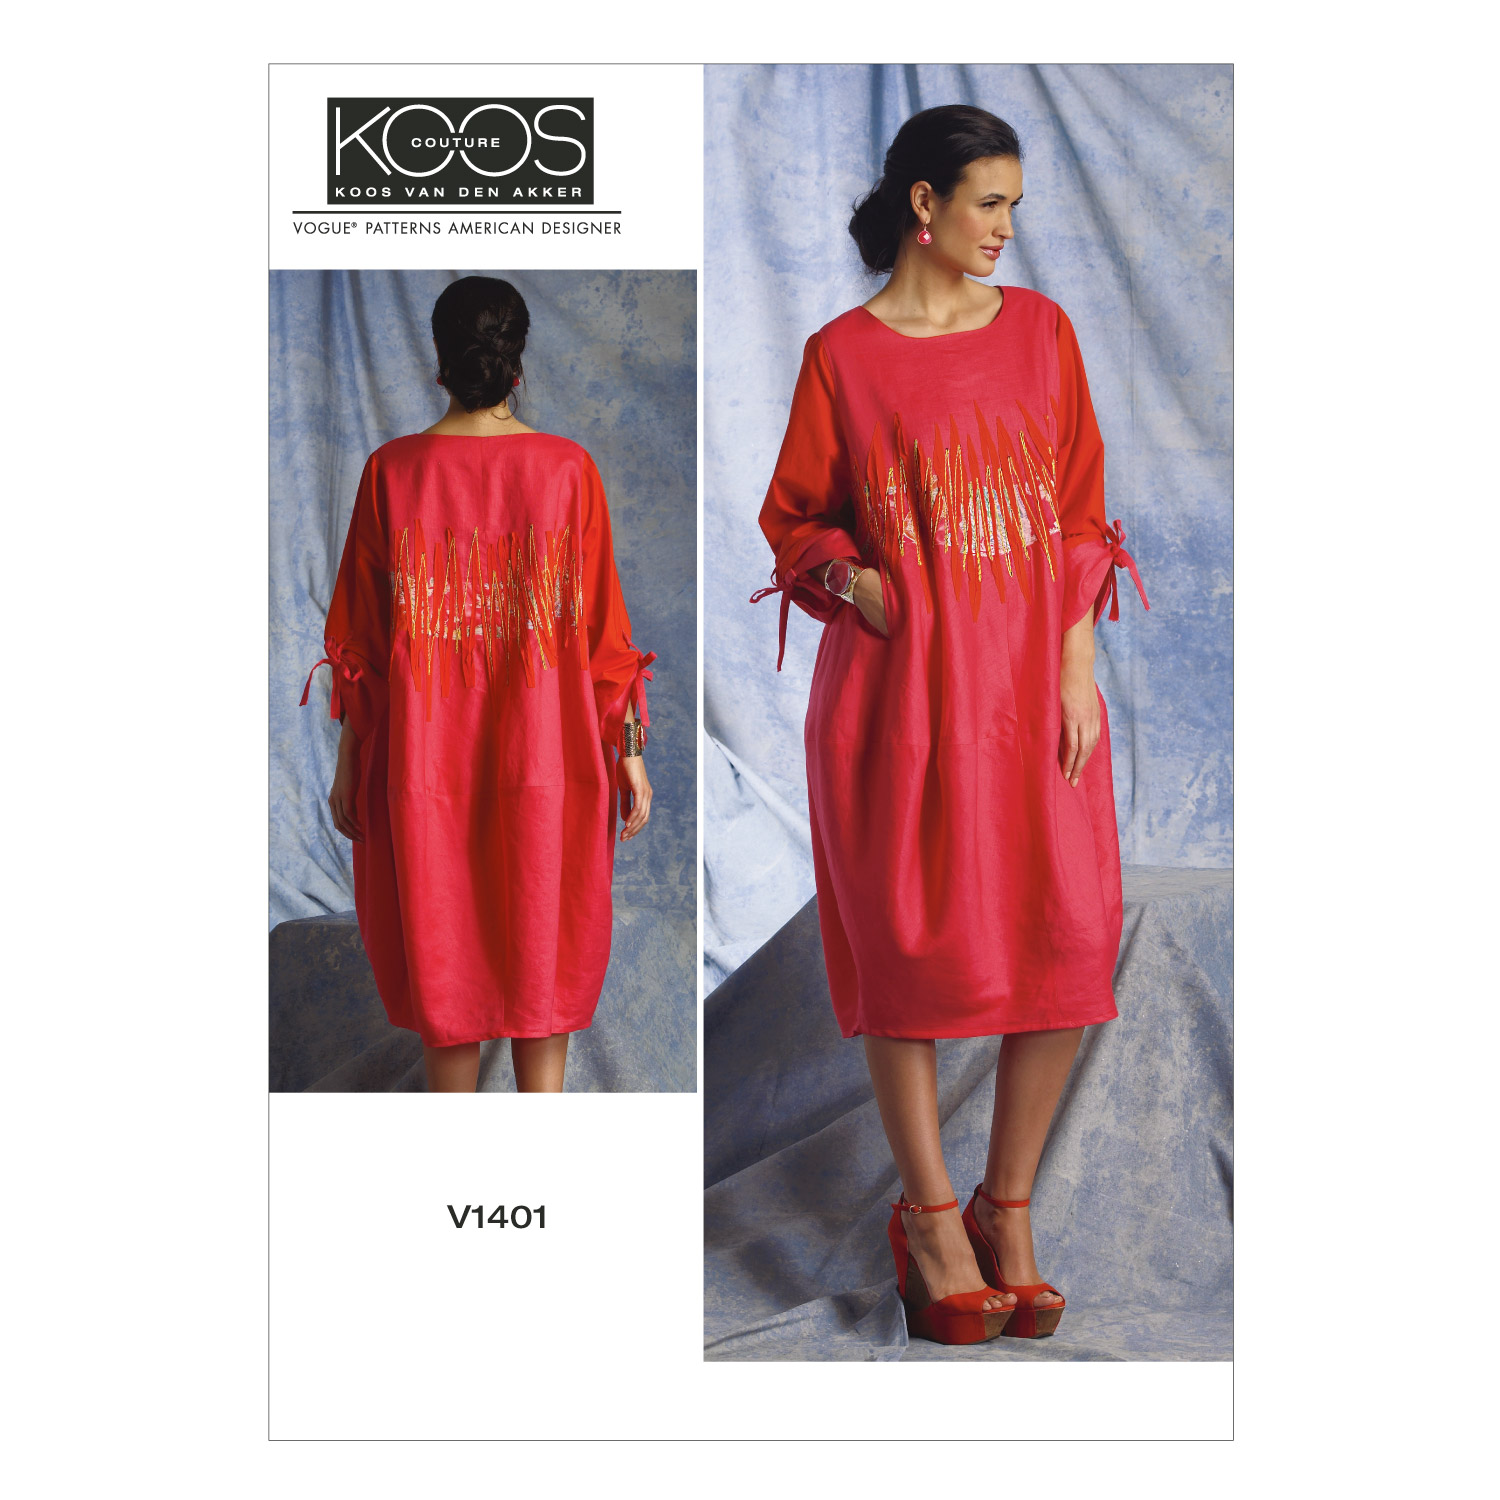 Vogue Patterns Misses Dress-V1401